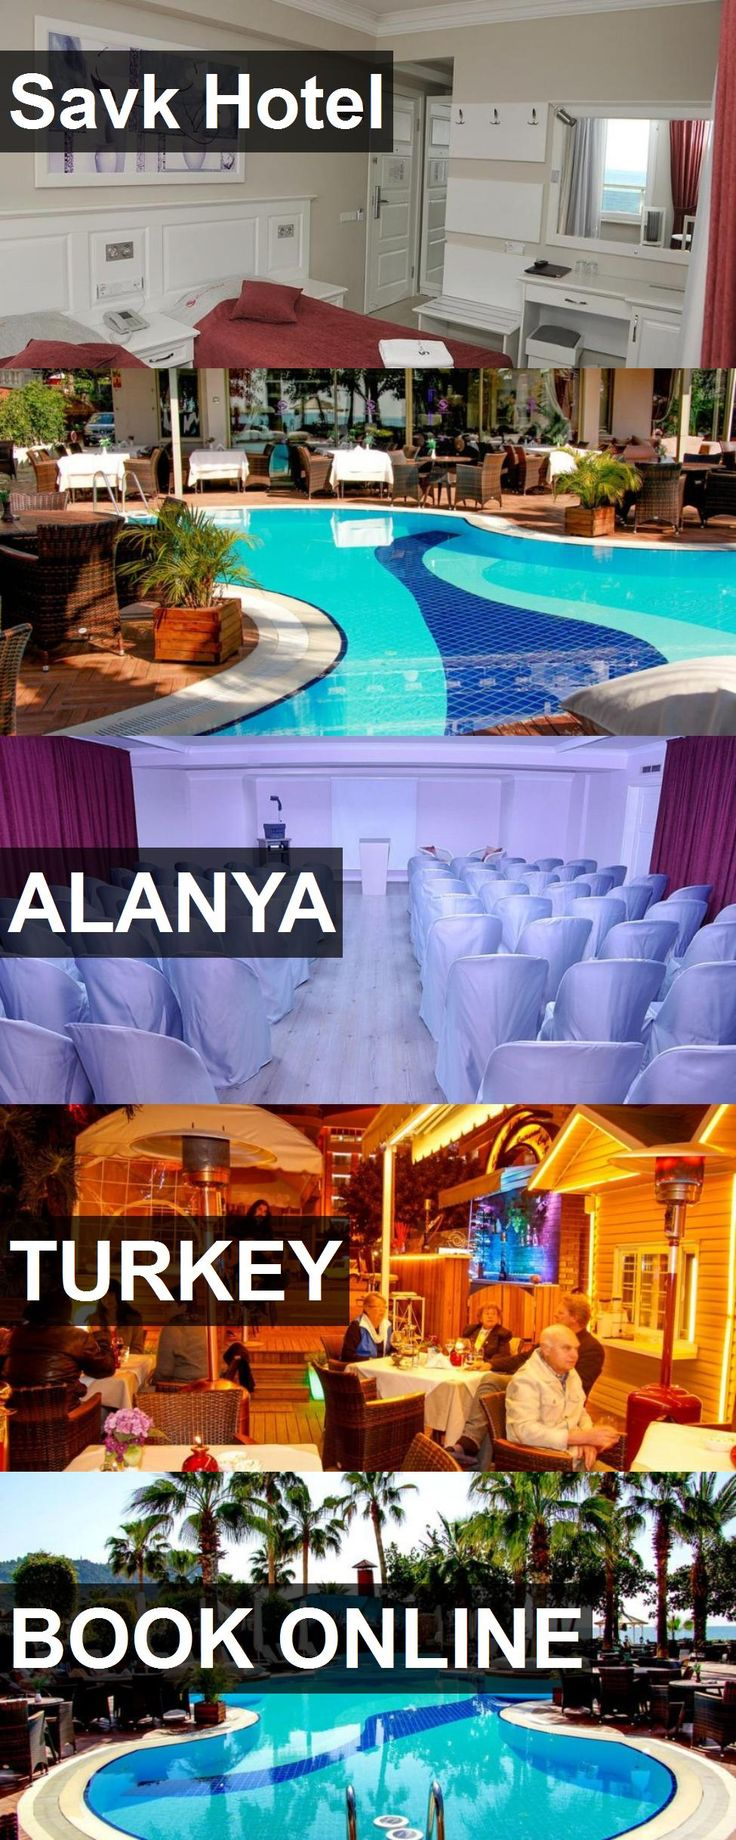 Savk Hotel in Alanya, Turkey. For more information, photos, reviews and best prices please follow the link. #Turkey #Alanya #travel #vacation #hotel